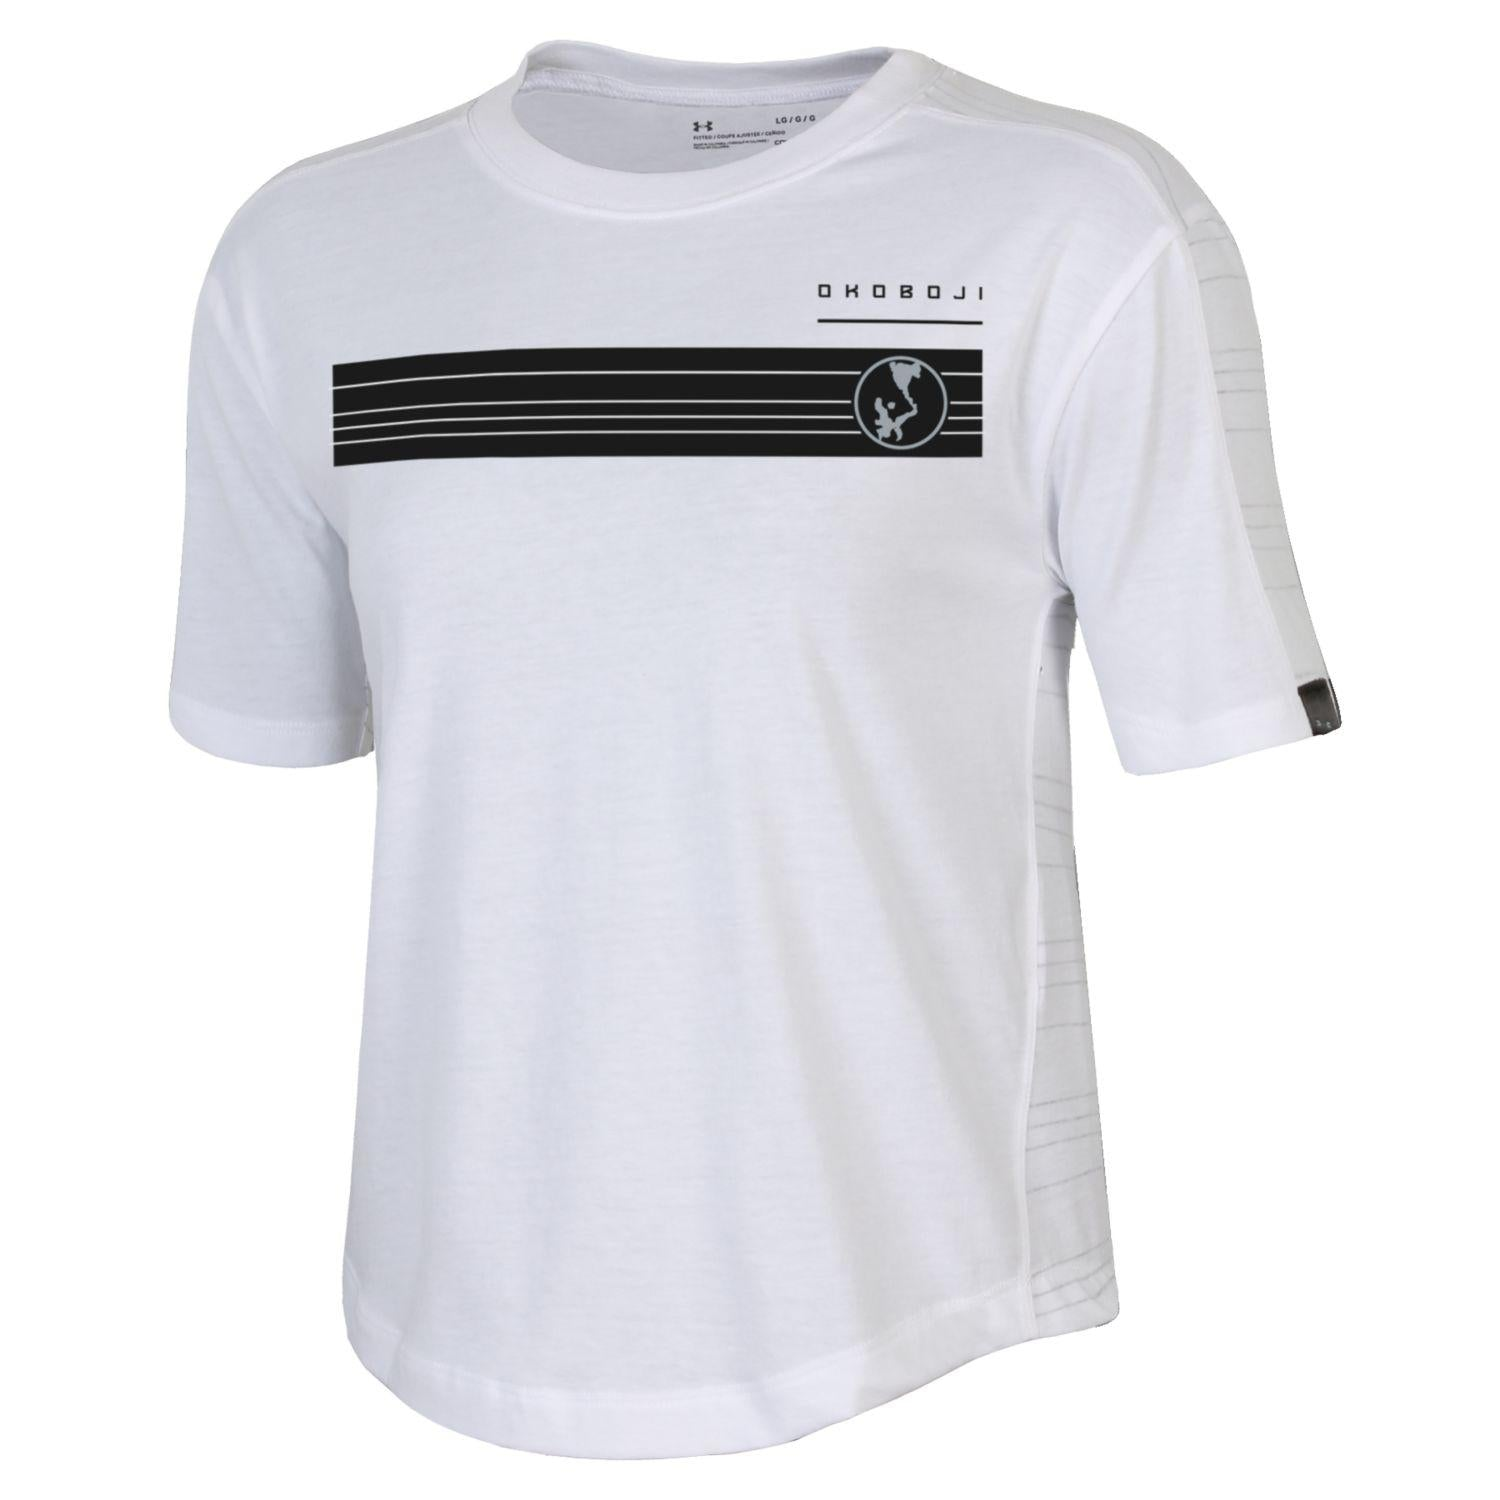 Okoboji Training Camp SS Tee - White/Stealth